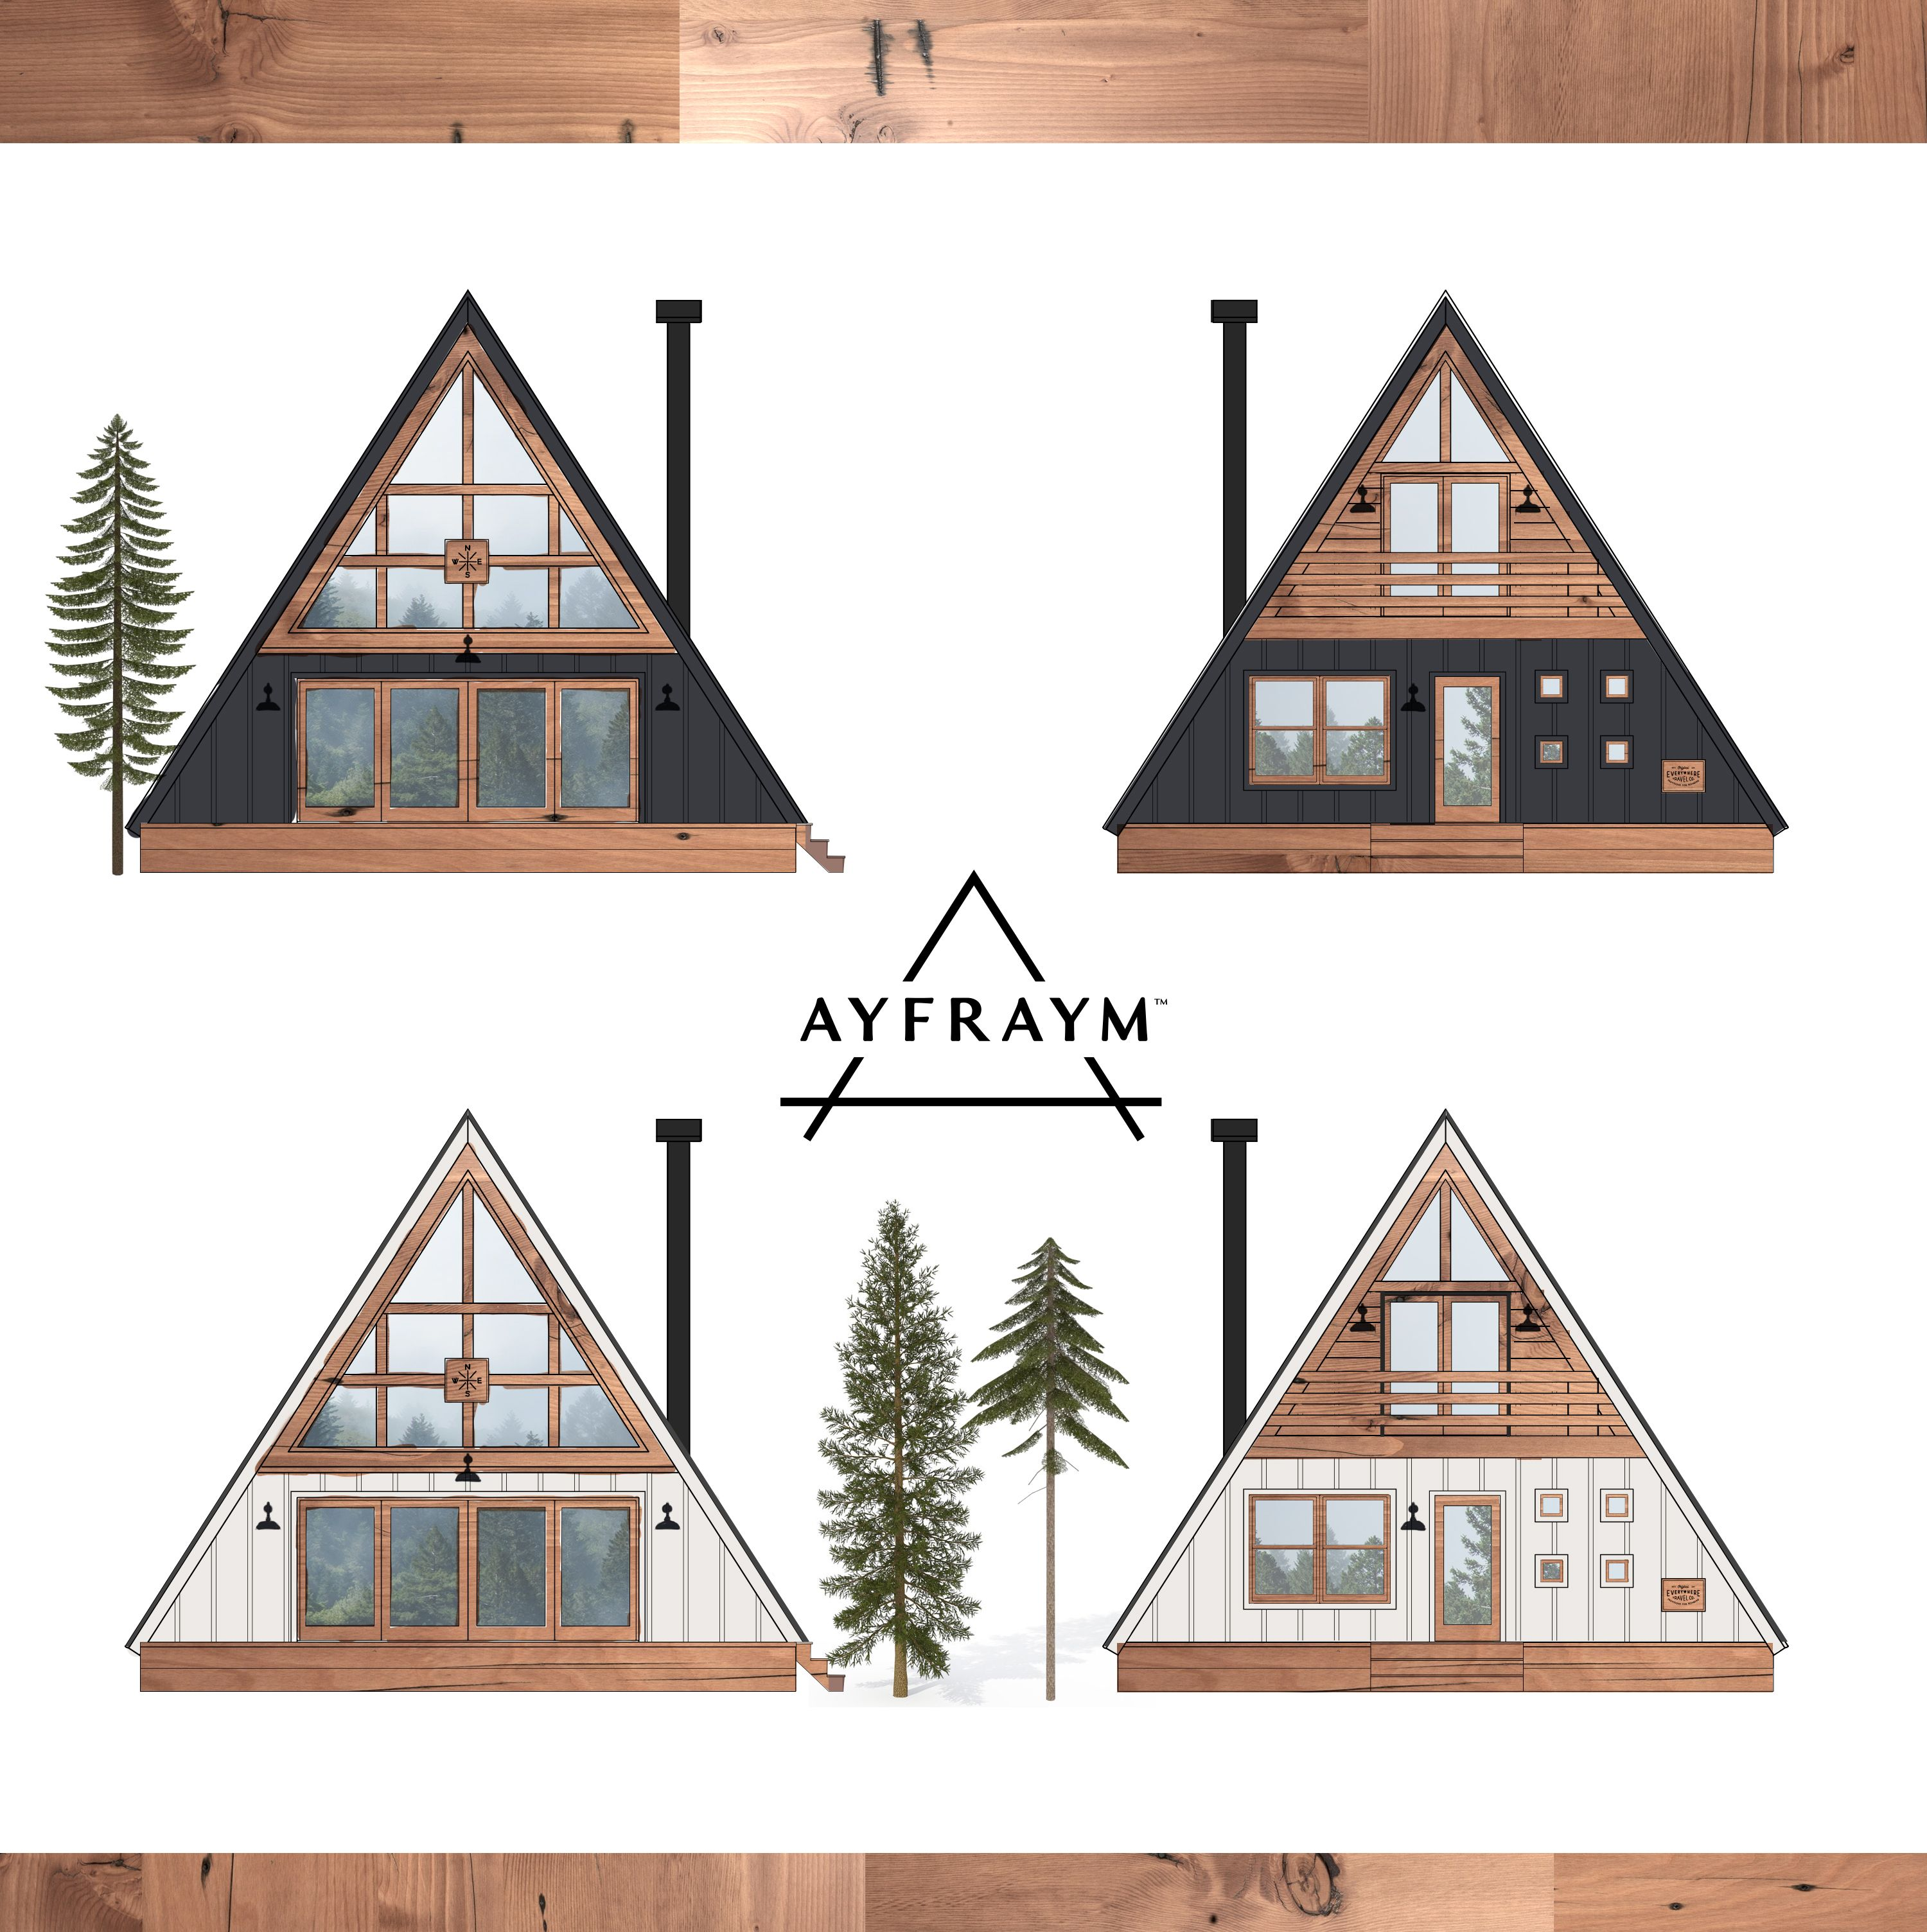 Ayfraym Concept By Everywhere Co A Frame Cabin Plans A Frame Cabin A Frame House Plans